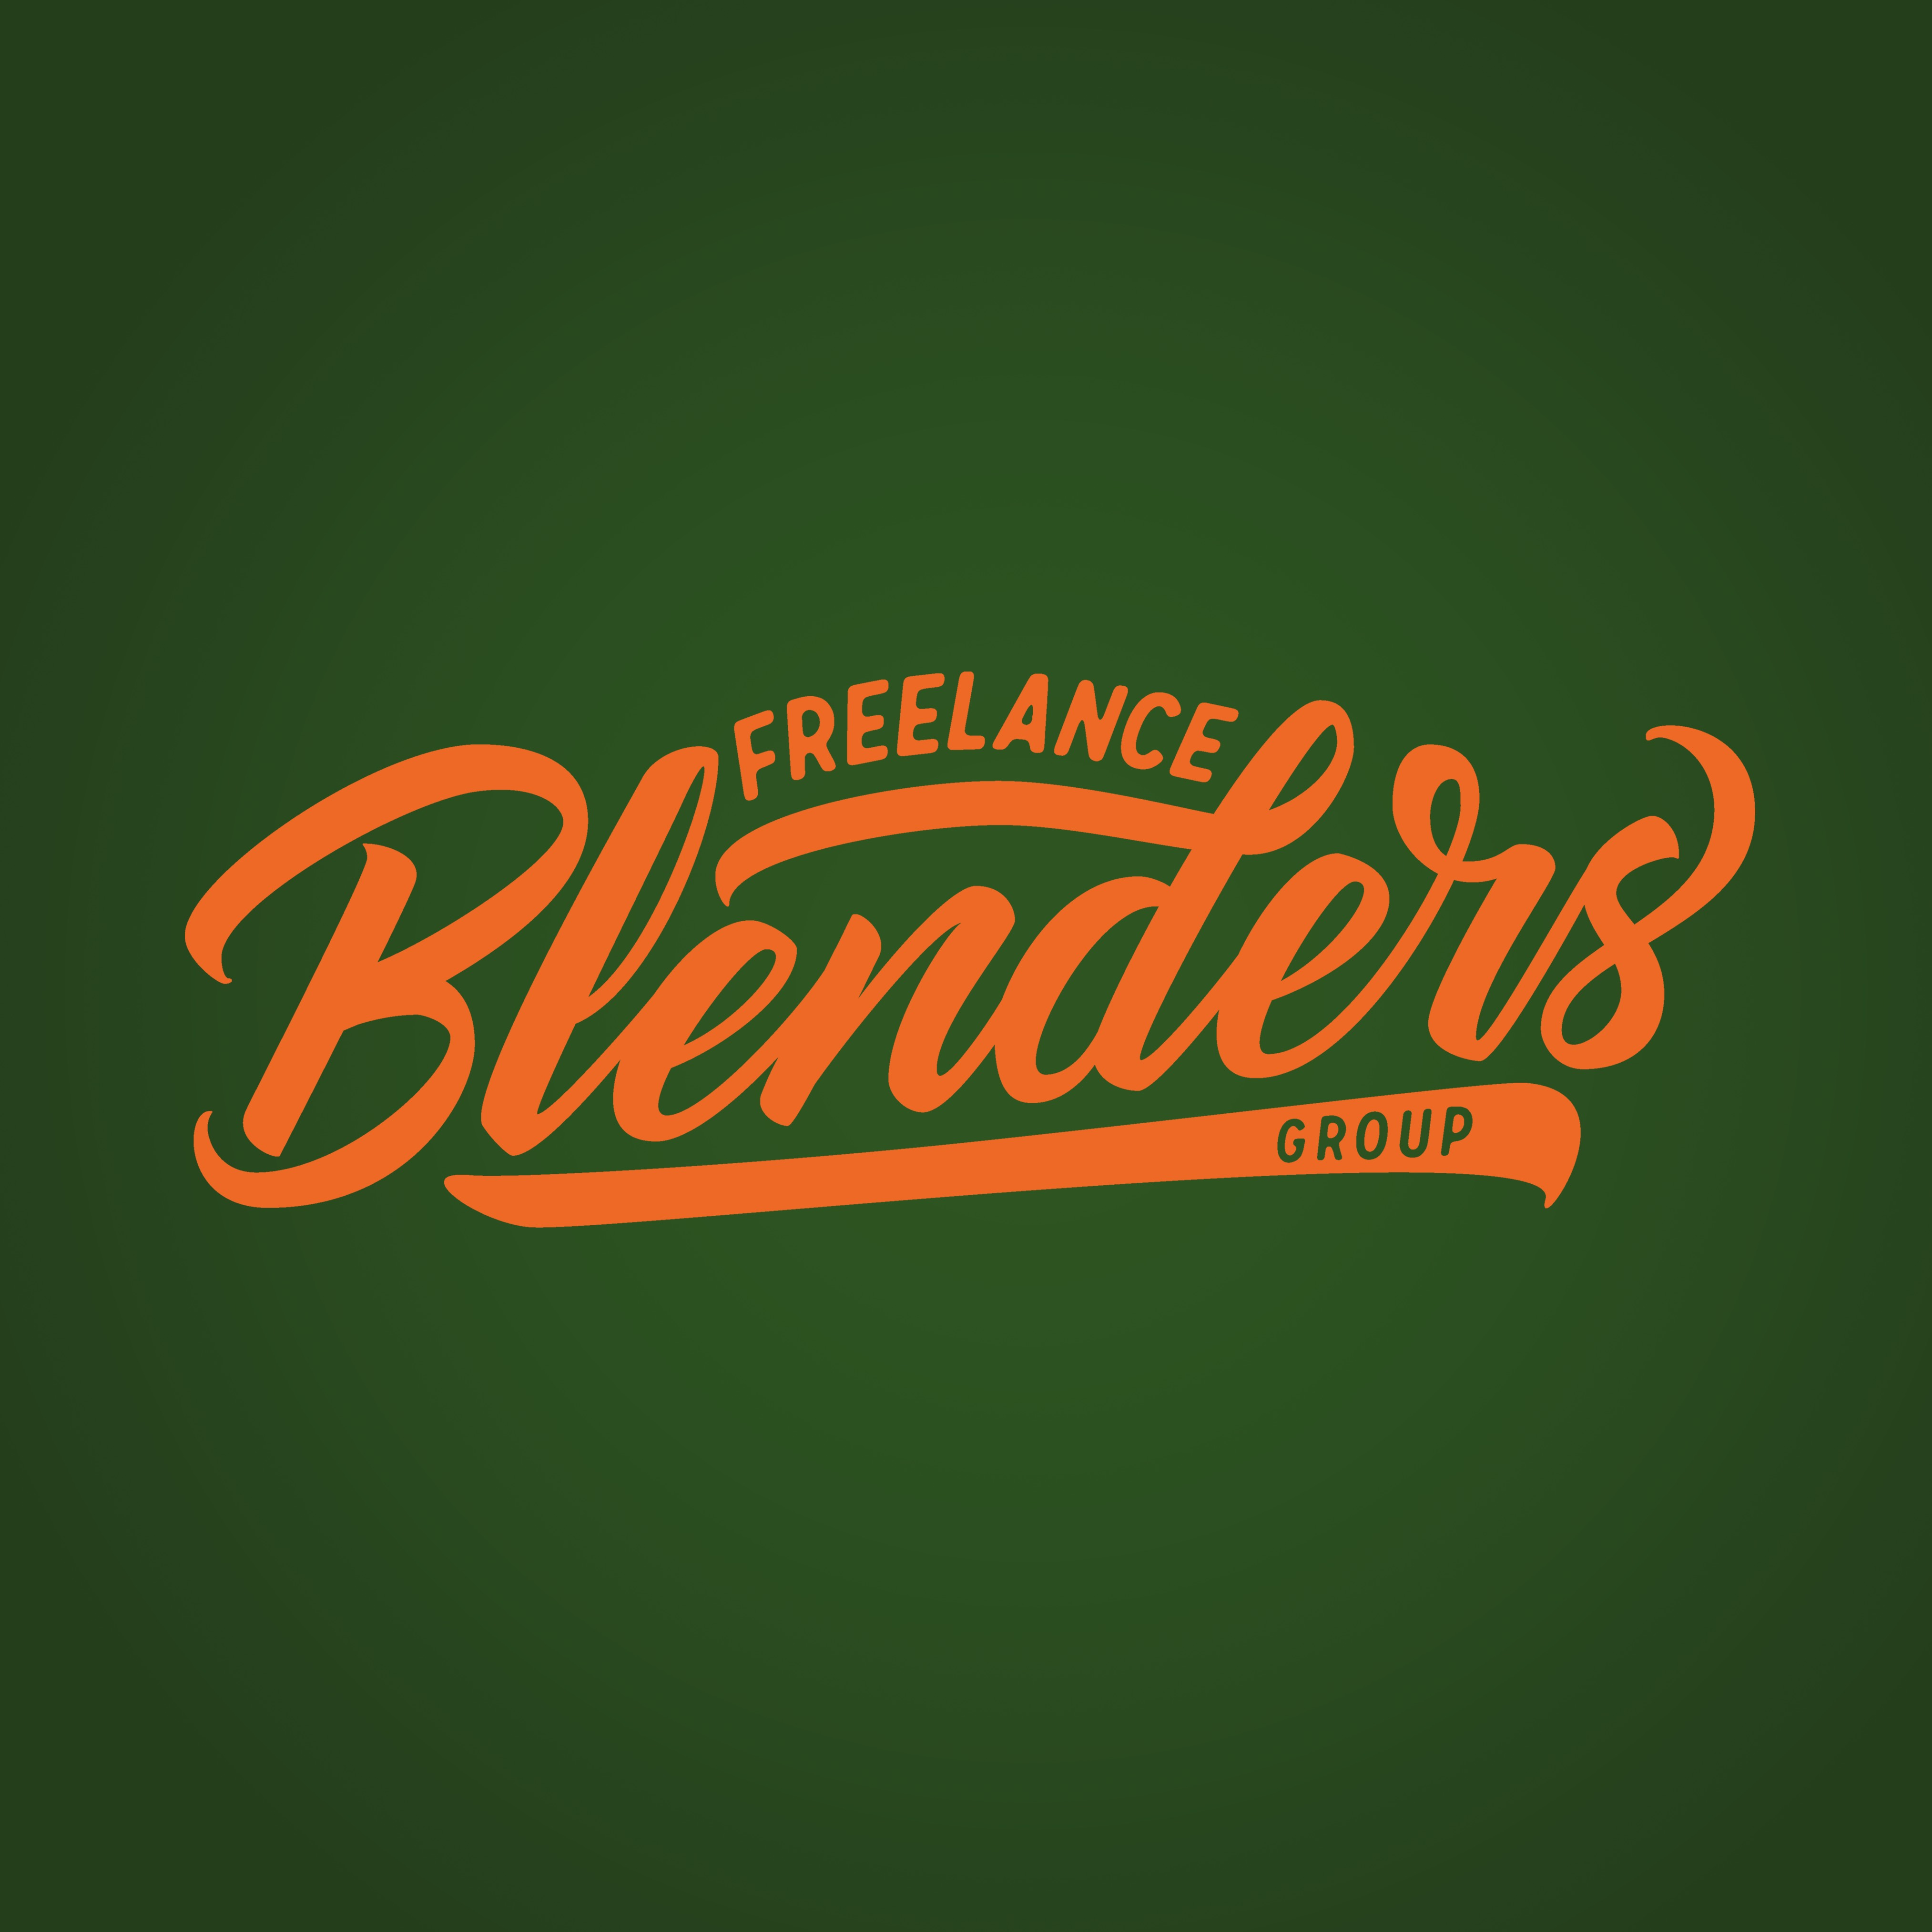 Blenders Group